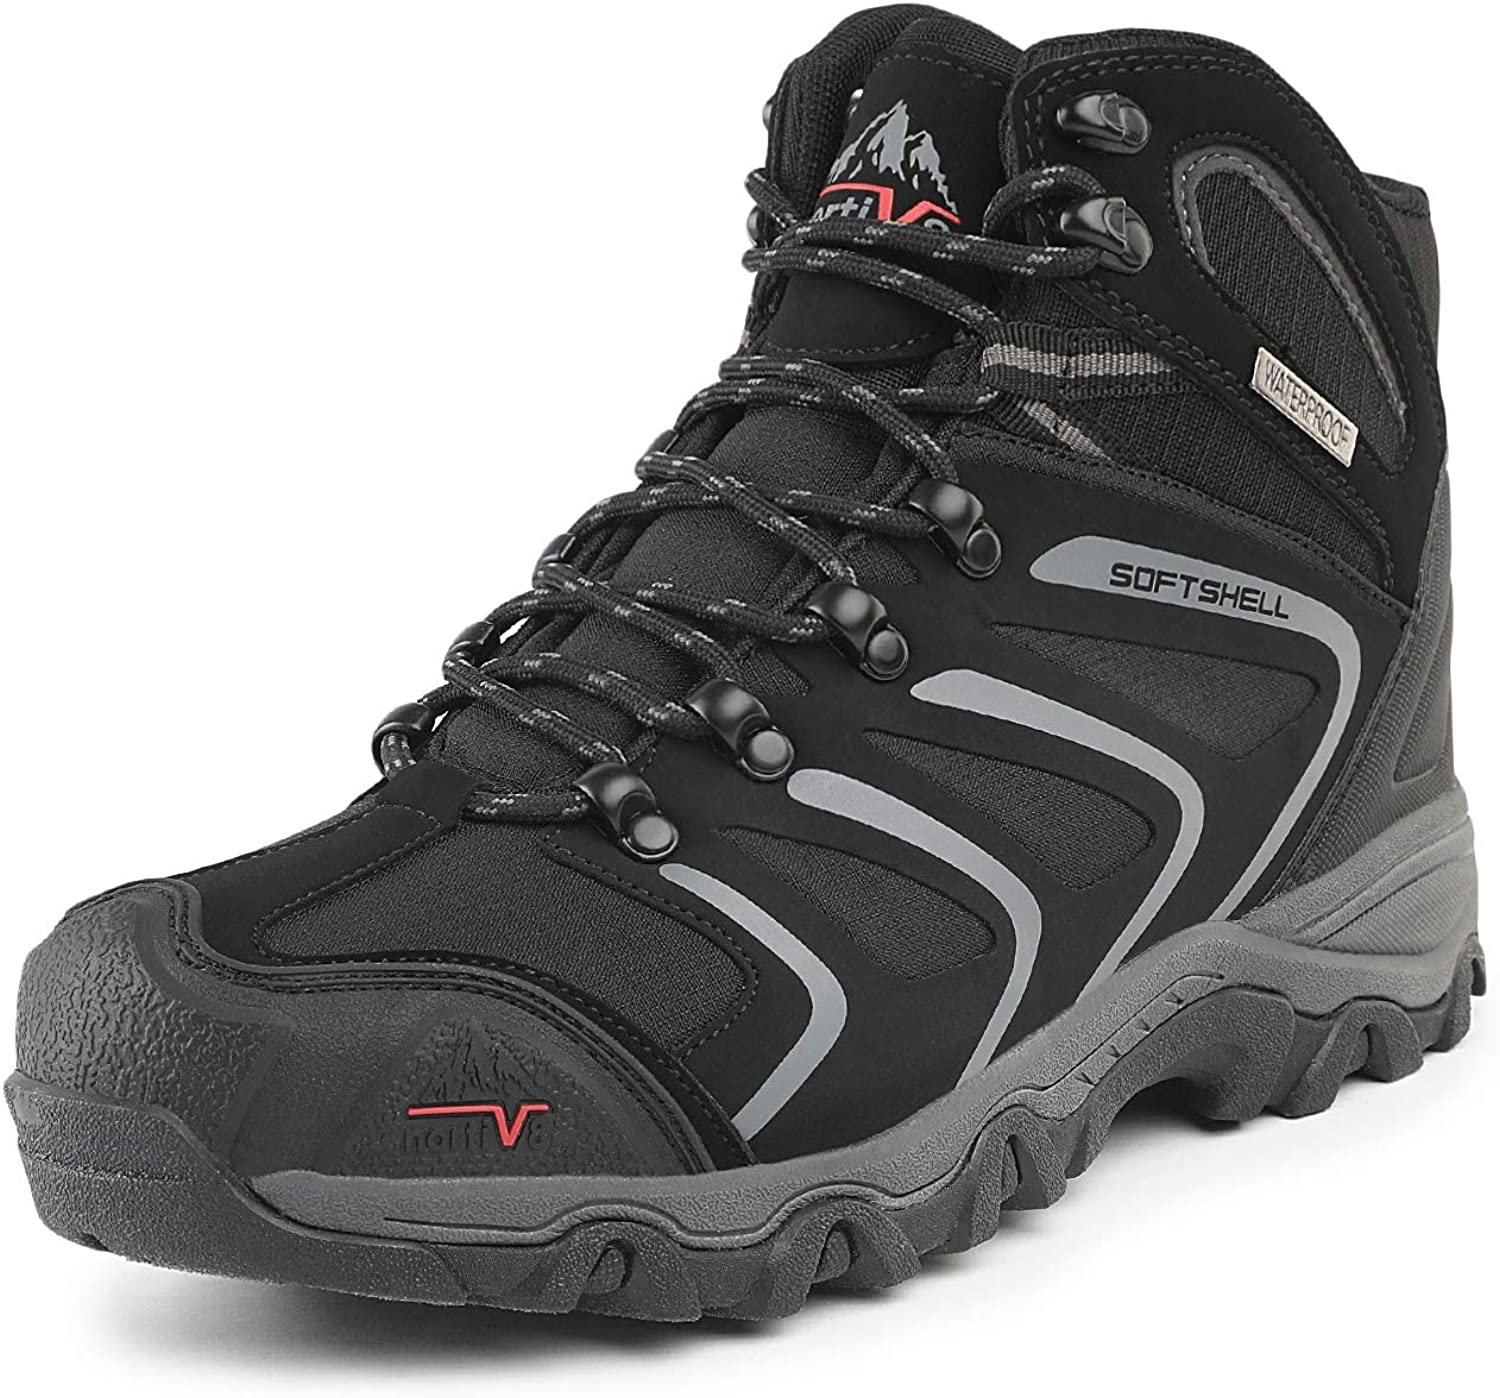 NORTIV 8 Men's Men's Ankle High Waterproof Hiking Boots Outdoor Lightweight shoes Backpacking Trekking Trails